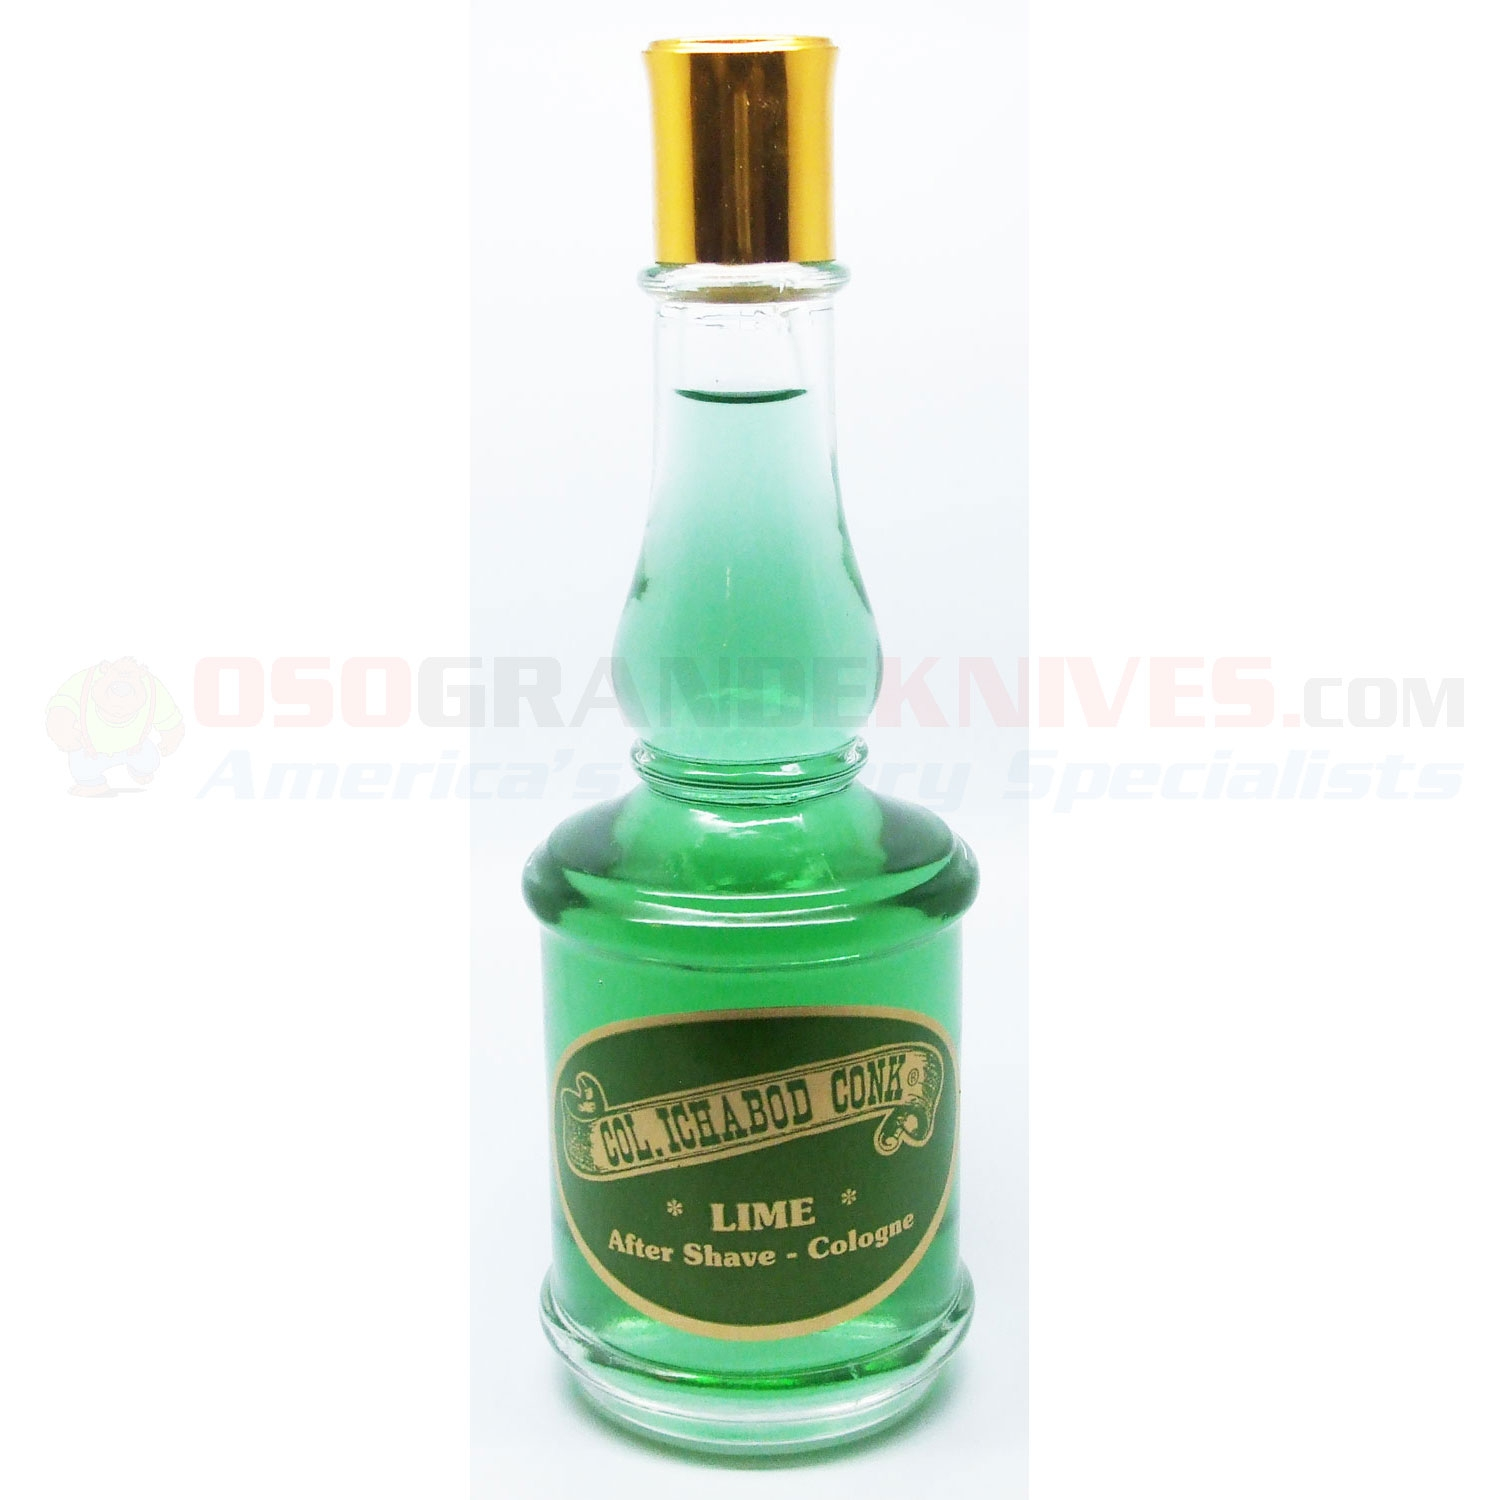 Colonel Conk Lime After Shave Cologne Osograndeknives